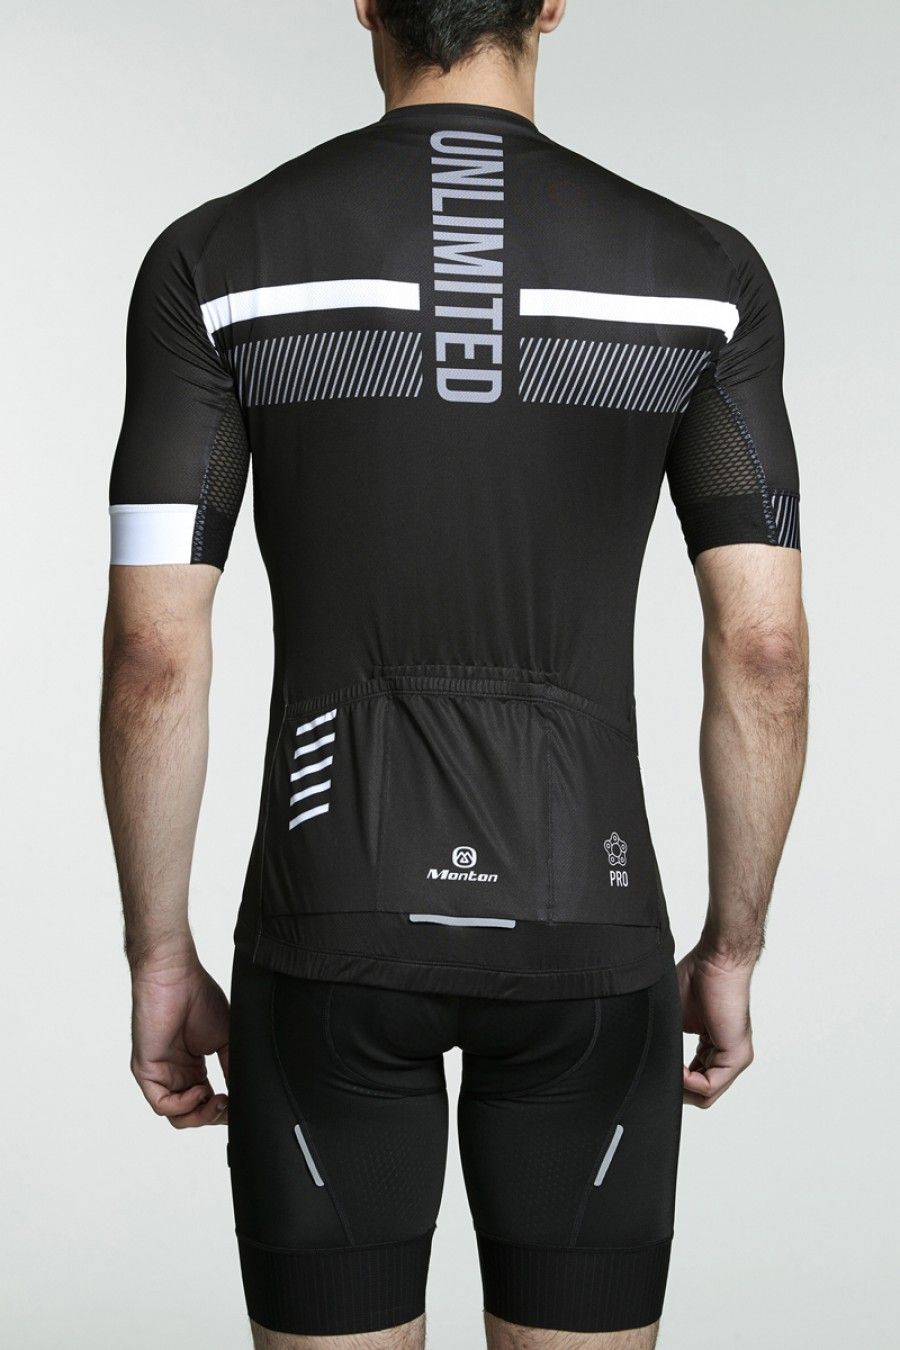 66d889dd4 men s cycling jersey